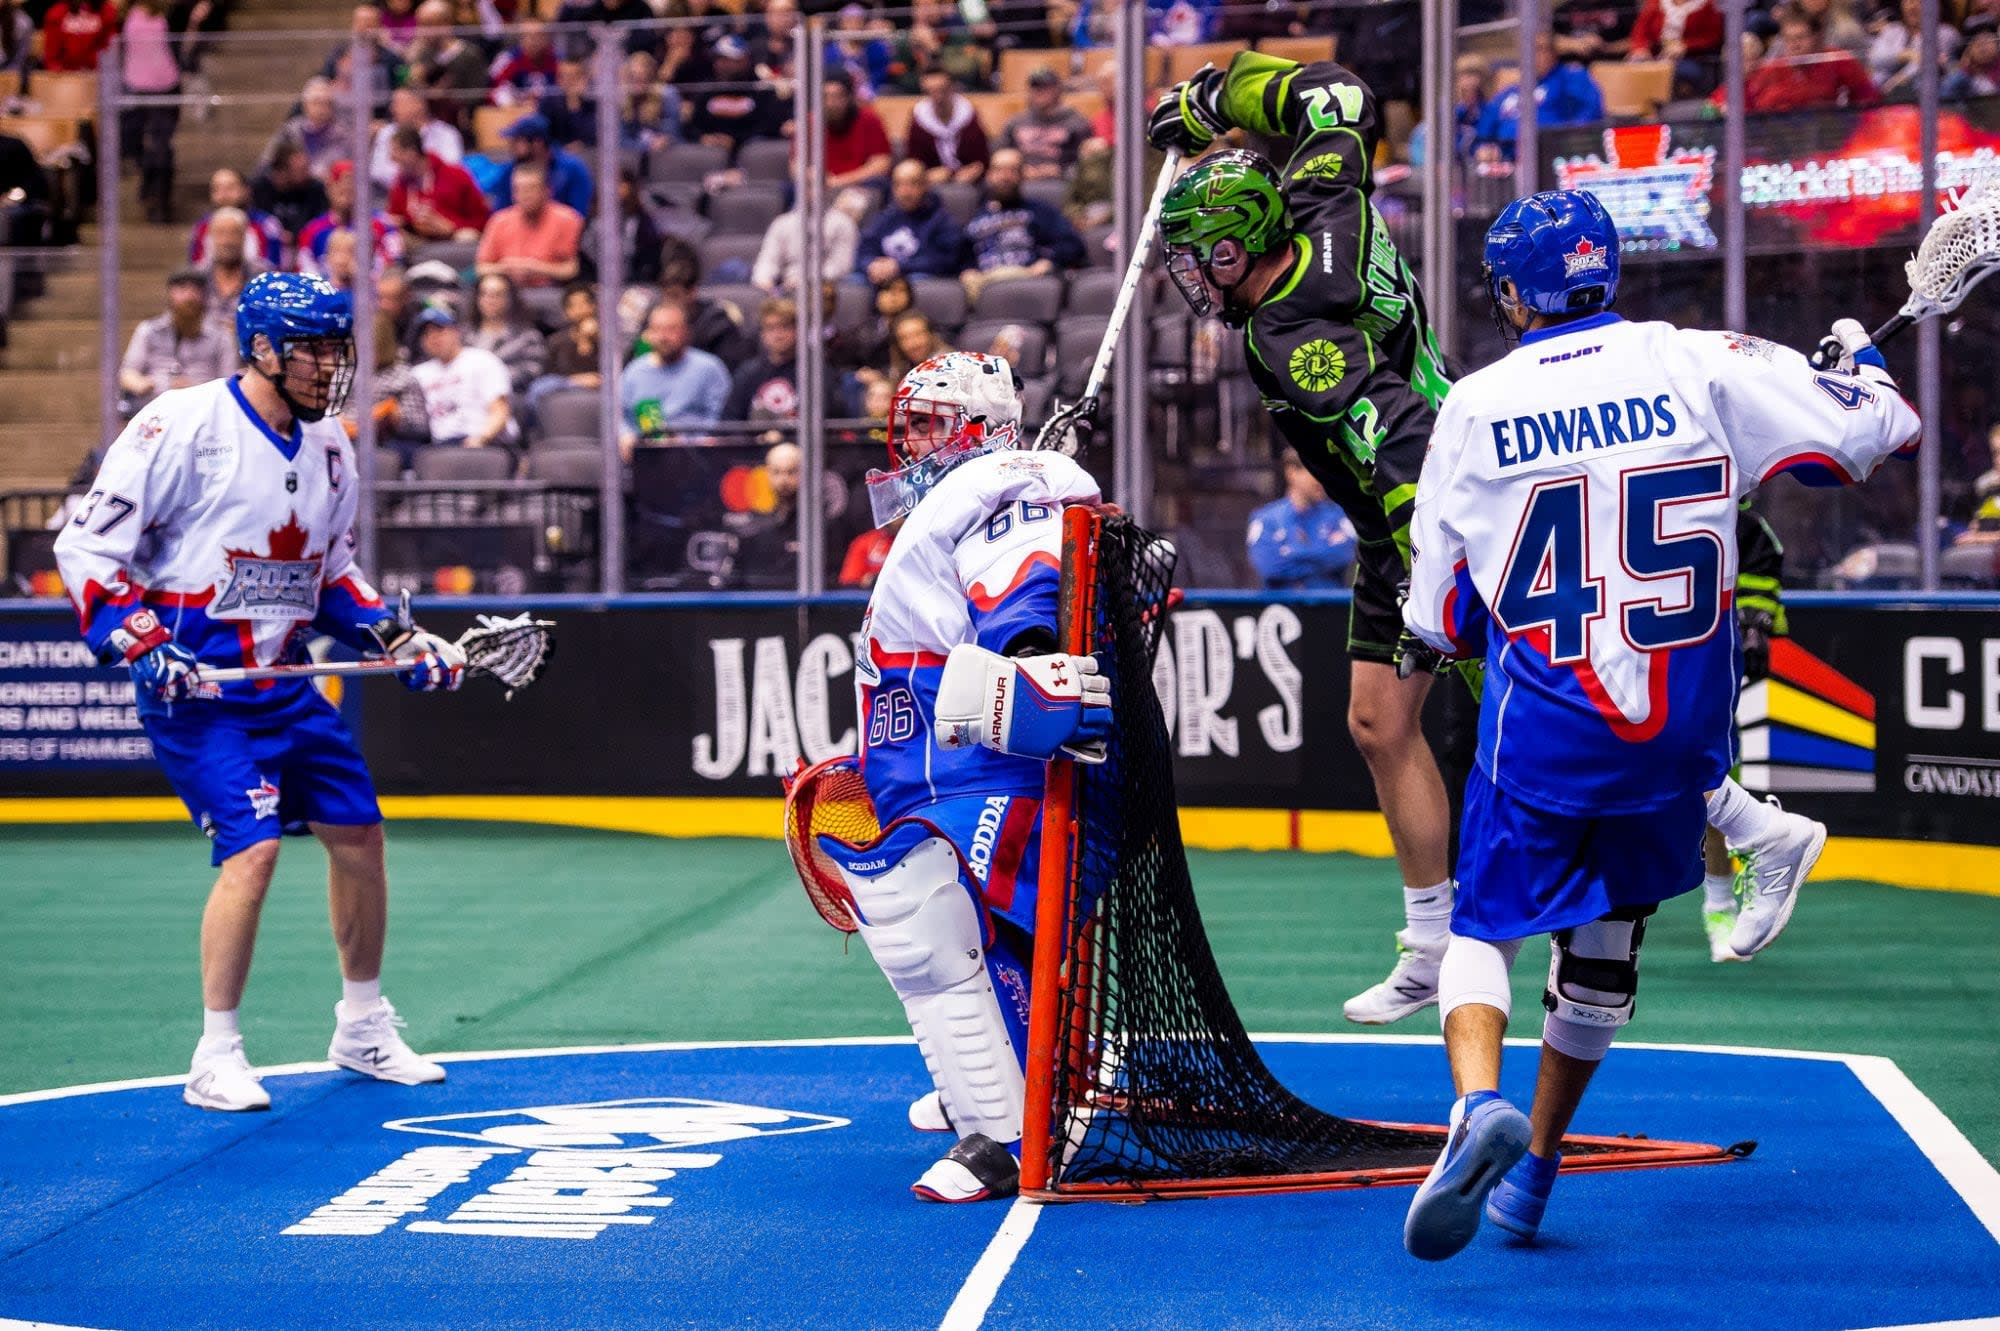 TORONTO, ON - DEC 16, 2017: National Lacrosse League game between the Toronto Rock and the Saskatchewan Rush, (Photo by Ryan McCullough / NLL)